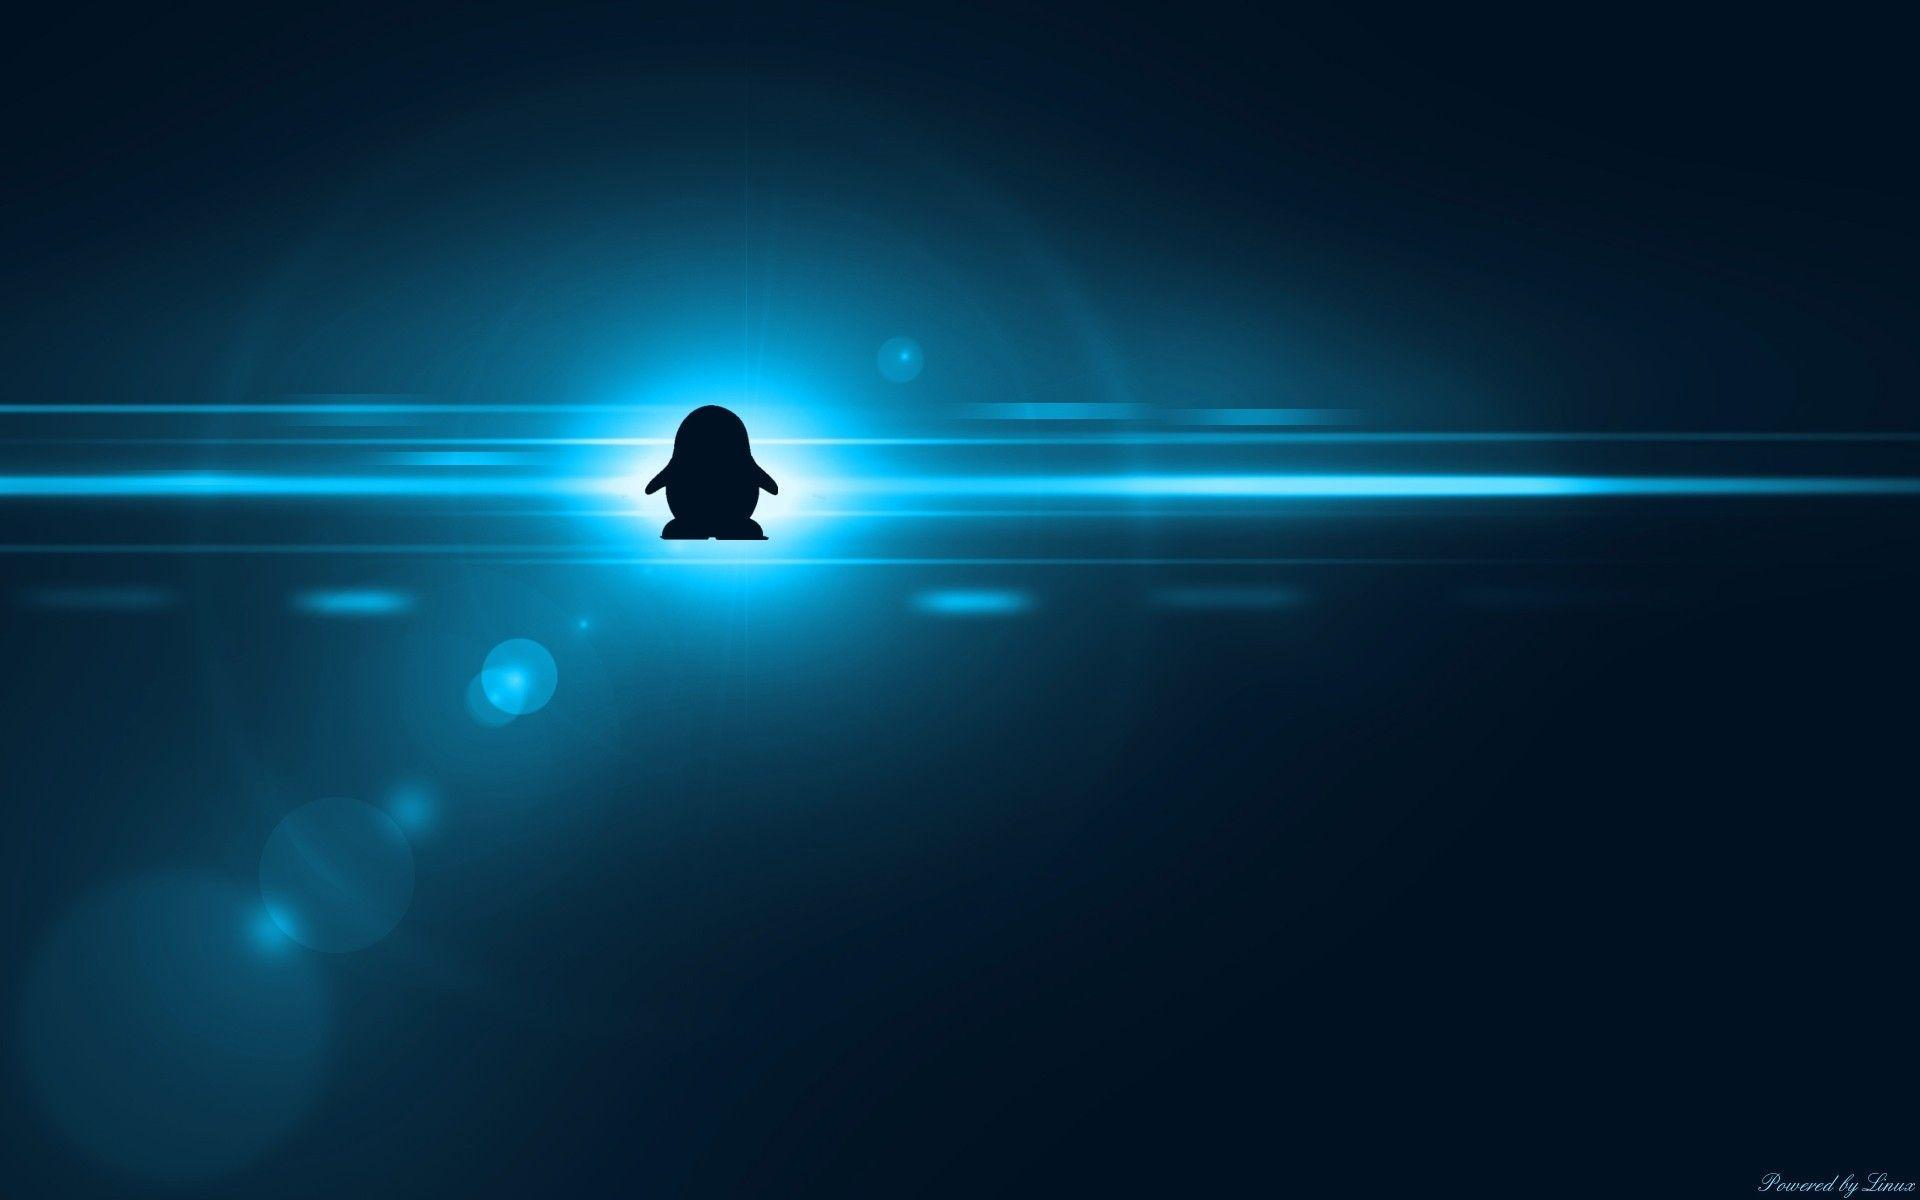 Awesome 3d Wallpapers Free Download Fedora Linux Wallpapers Wallpaper Cave